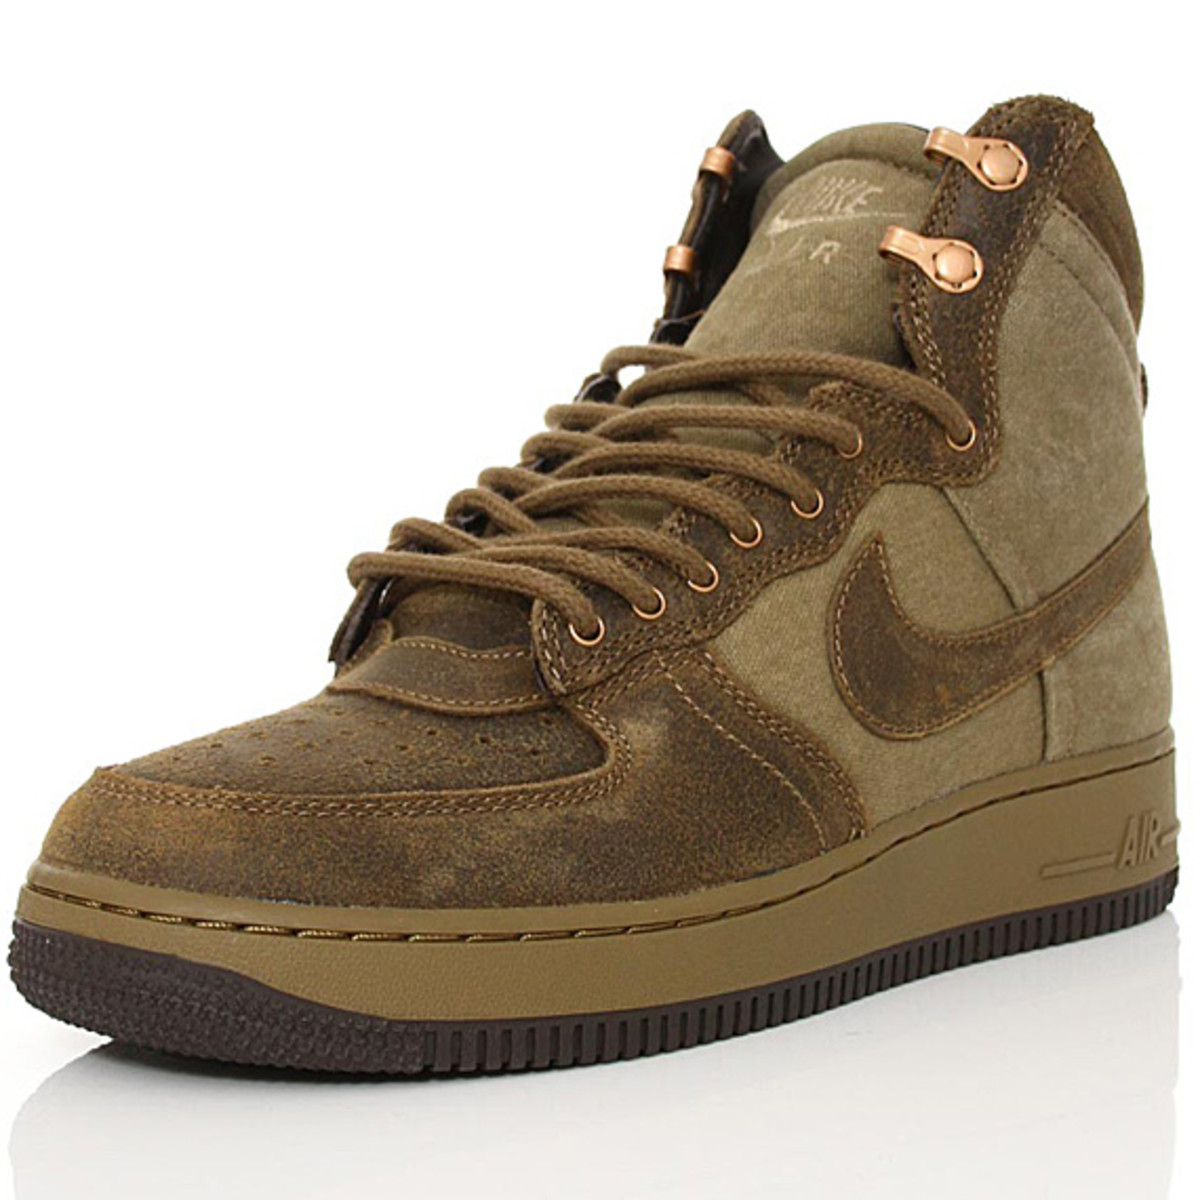 nike-air-force-1-hi-dcn-military-boot-raw-umber-04